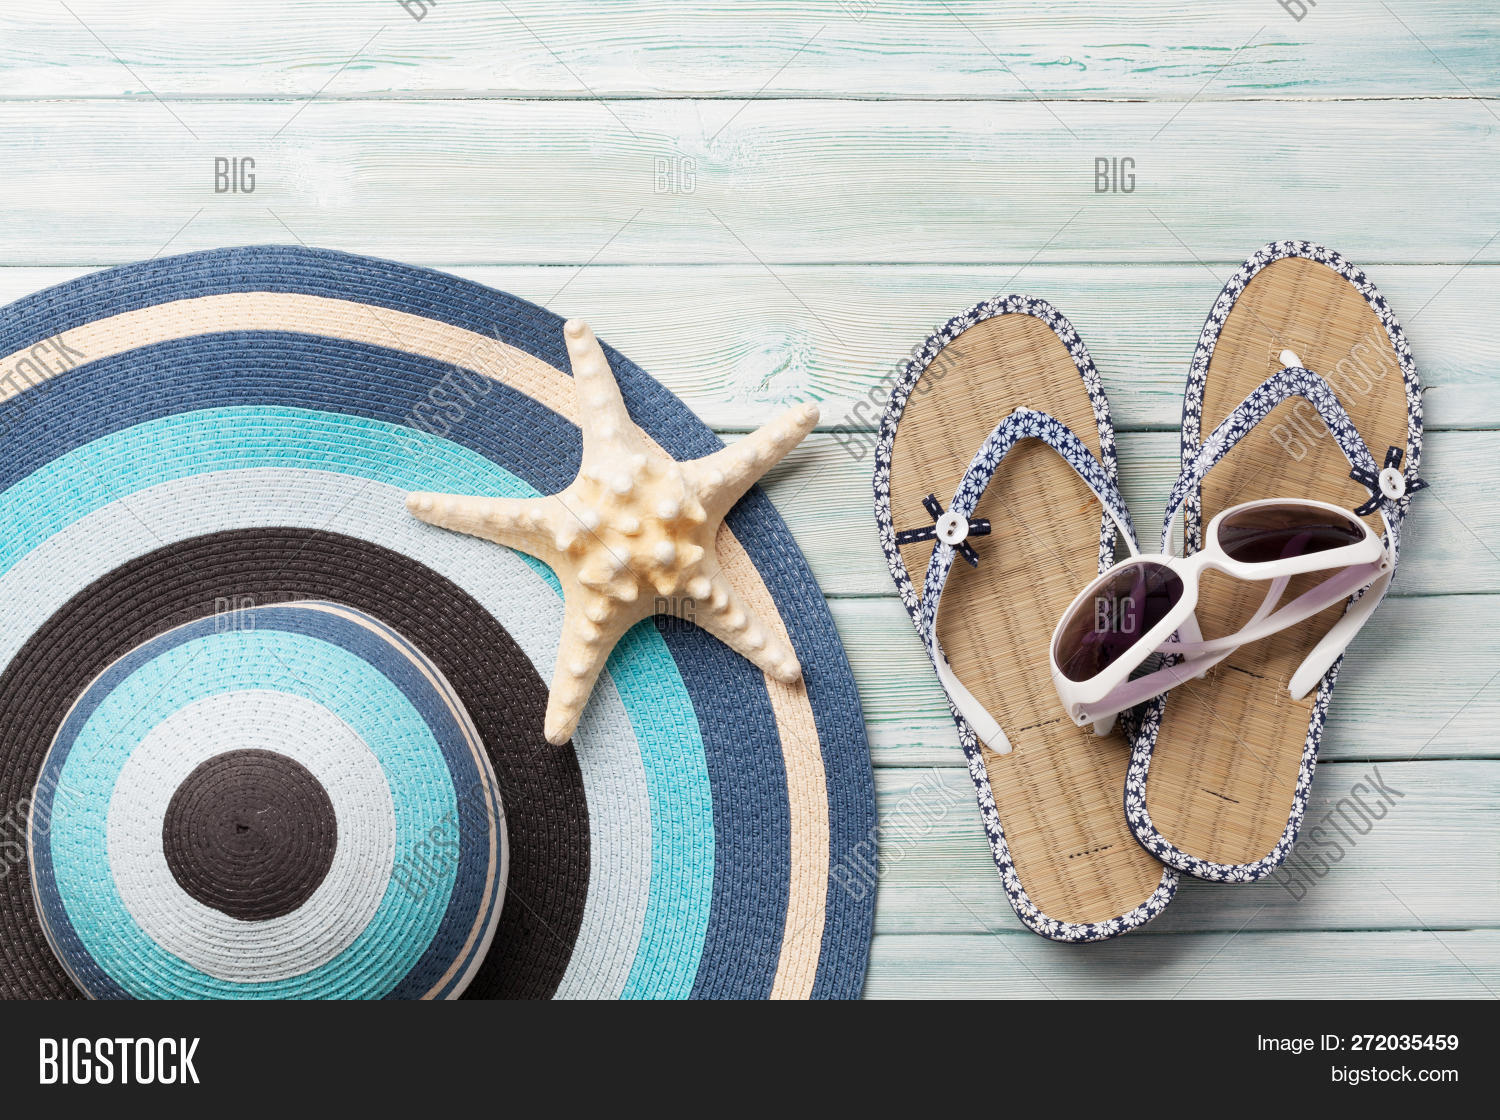 83d28c4dcf28c Travel vacation background concept with beach hat